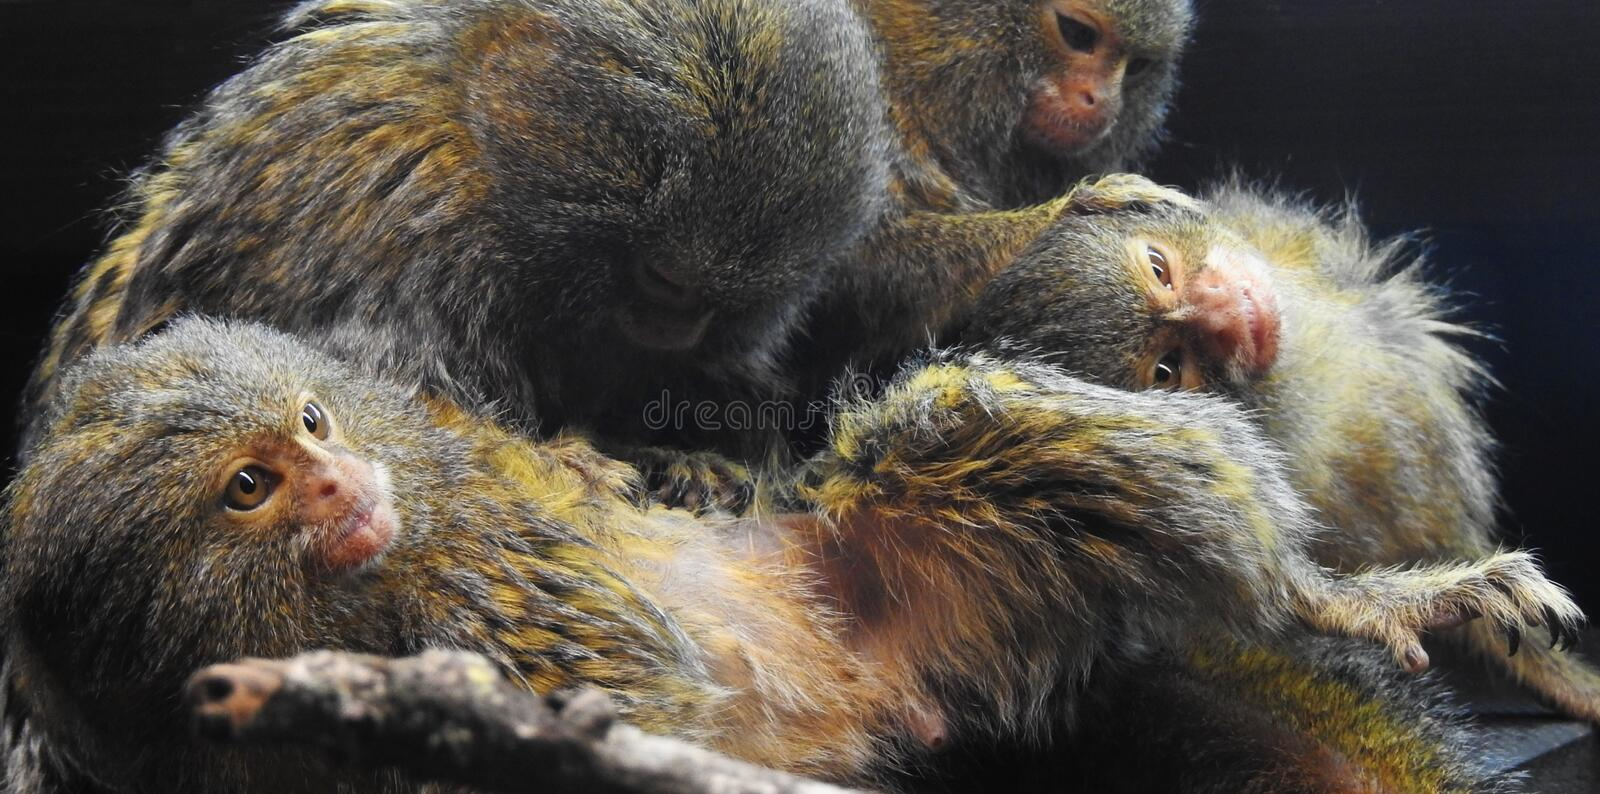 A family of four marmoset monkeys grooming one another stock image